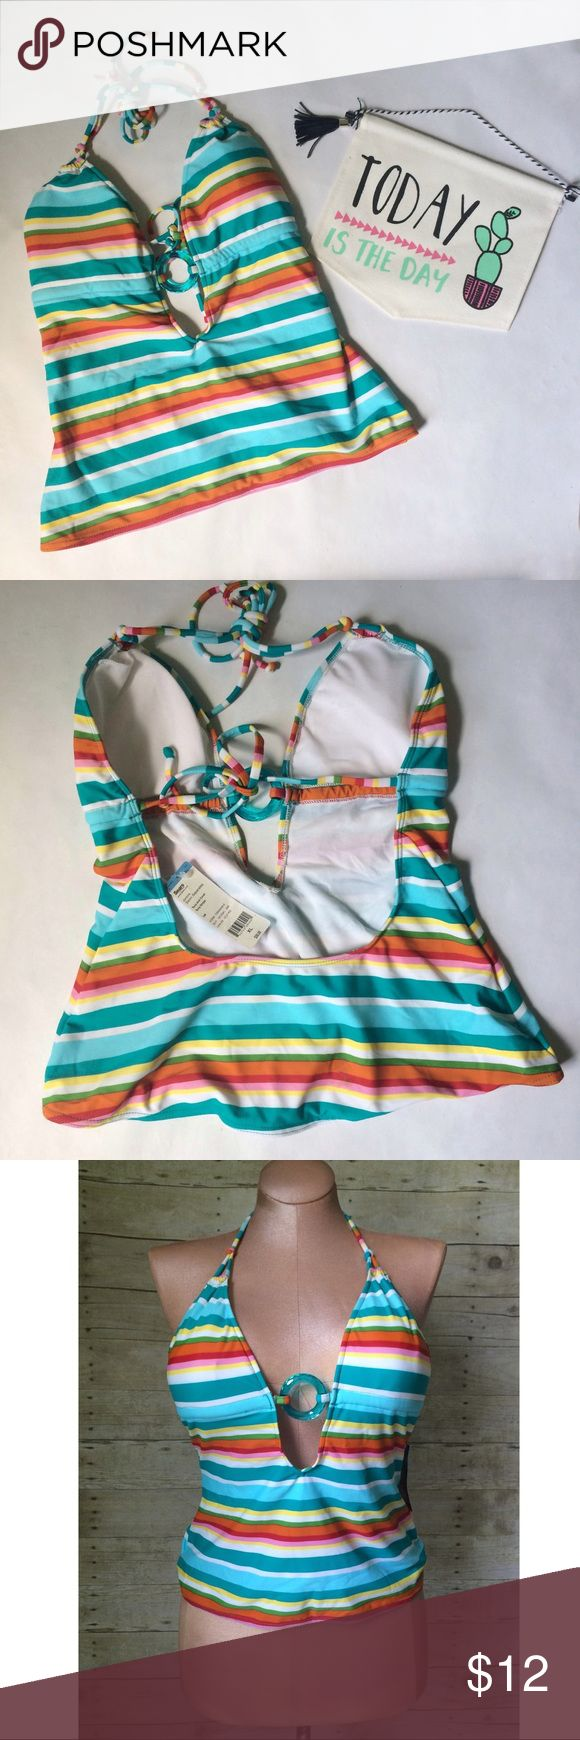 ✨NEW Listing✨Multi-color striped swimsuit top NWT Multi-color striped juniors swimsuit top with translucent plastic ring detail. Ties at neck and across back. Size XL. 80% nylon/20% spandex. Not interested in trades. NWT Personal Identity Swim